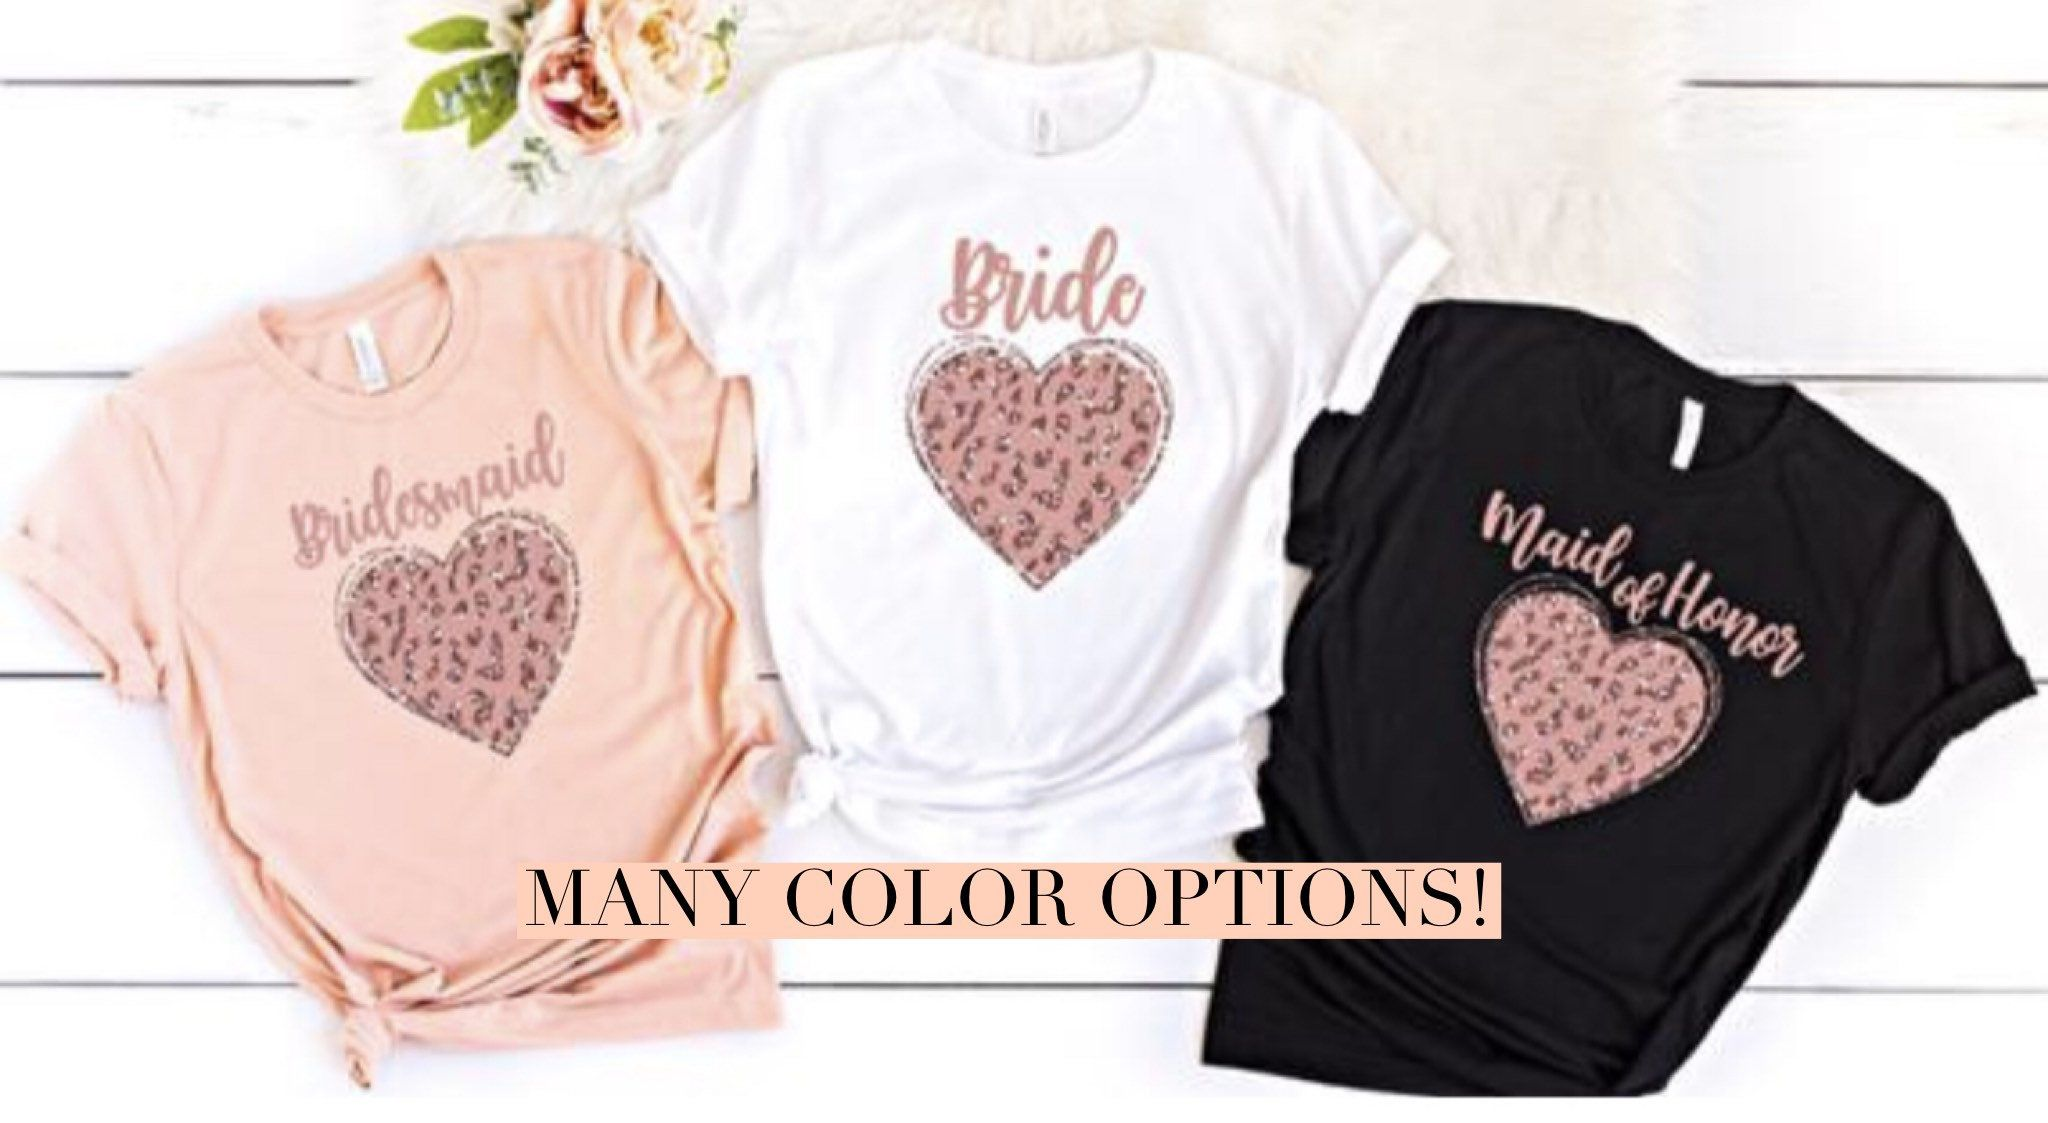 Matron of Honor Brides maid Shirt Bridesmaid Shirts for Bachelorette Party Bridal Party Shirts Getting Ready Bachlorette Party Shirts